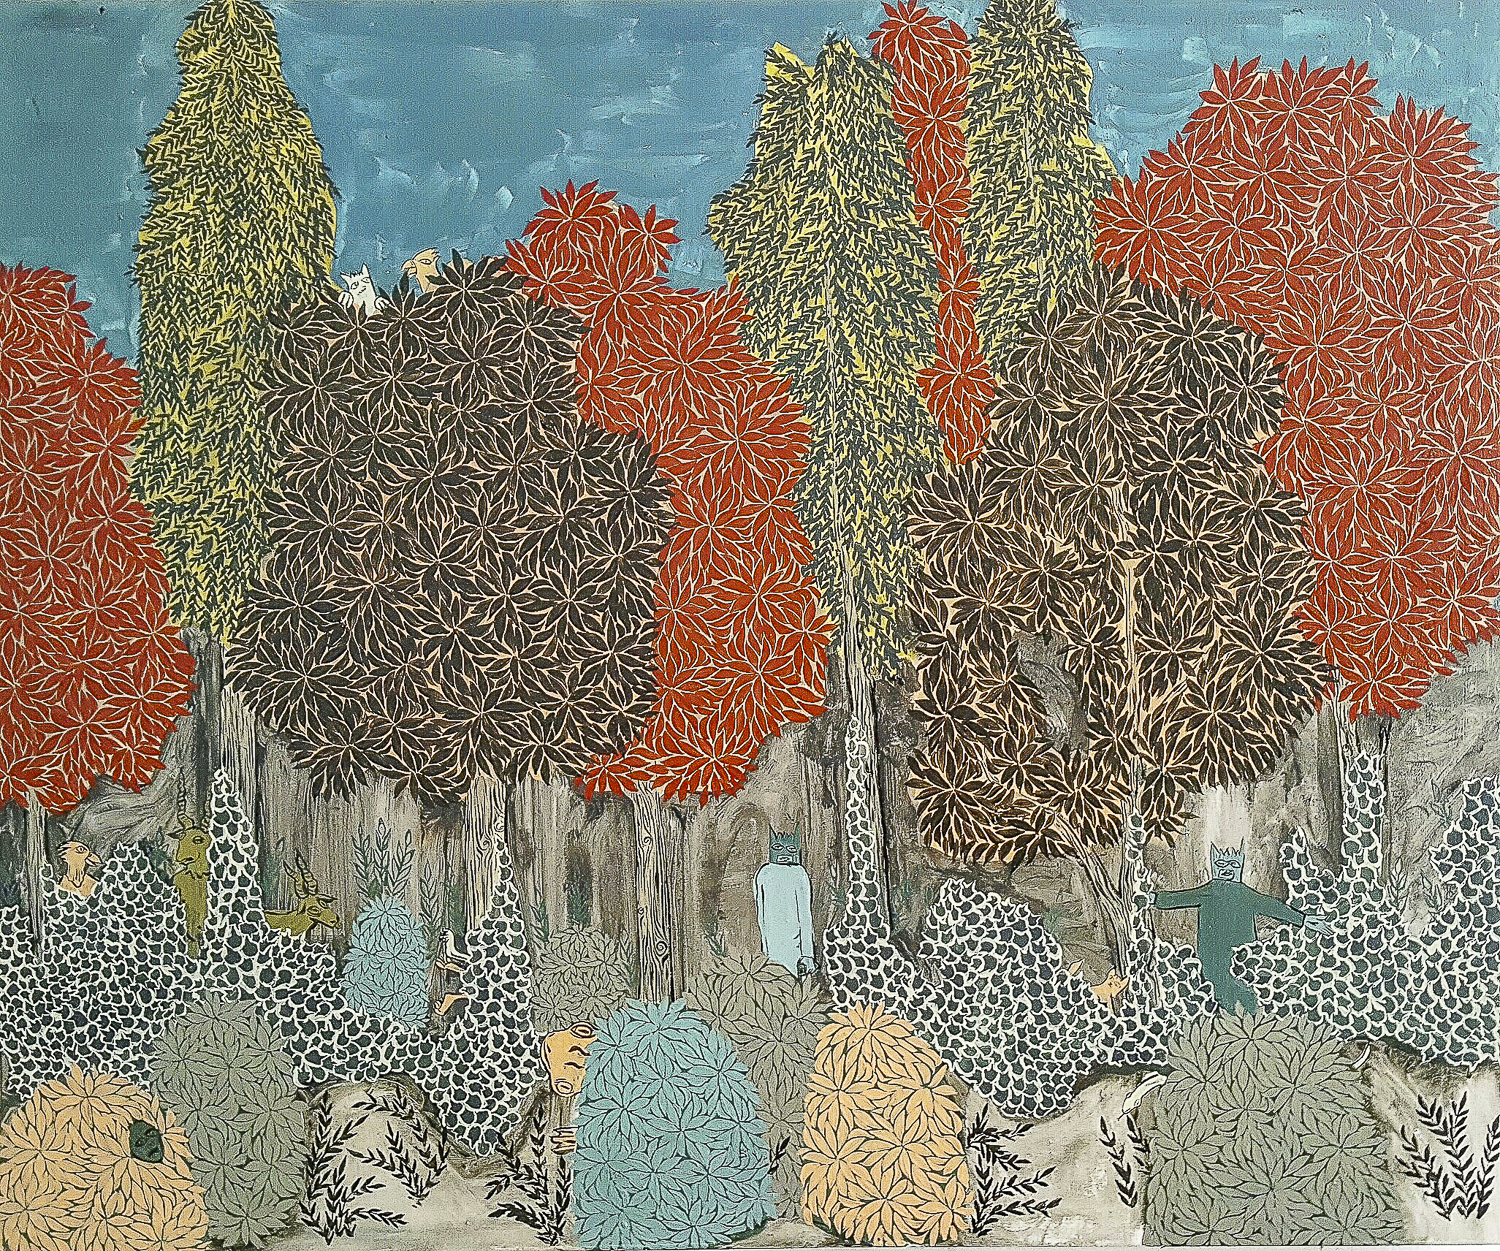 The Tree Line Acrylic and latex paint on muslin 24 x 30 inches ACA011